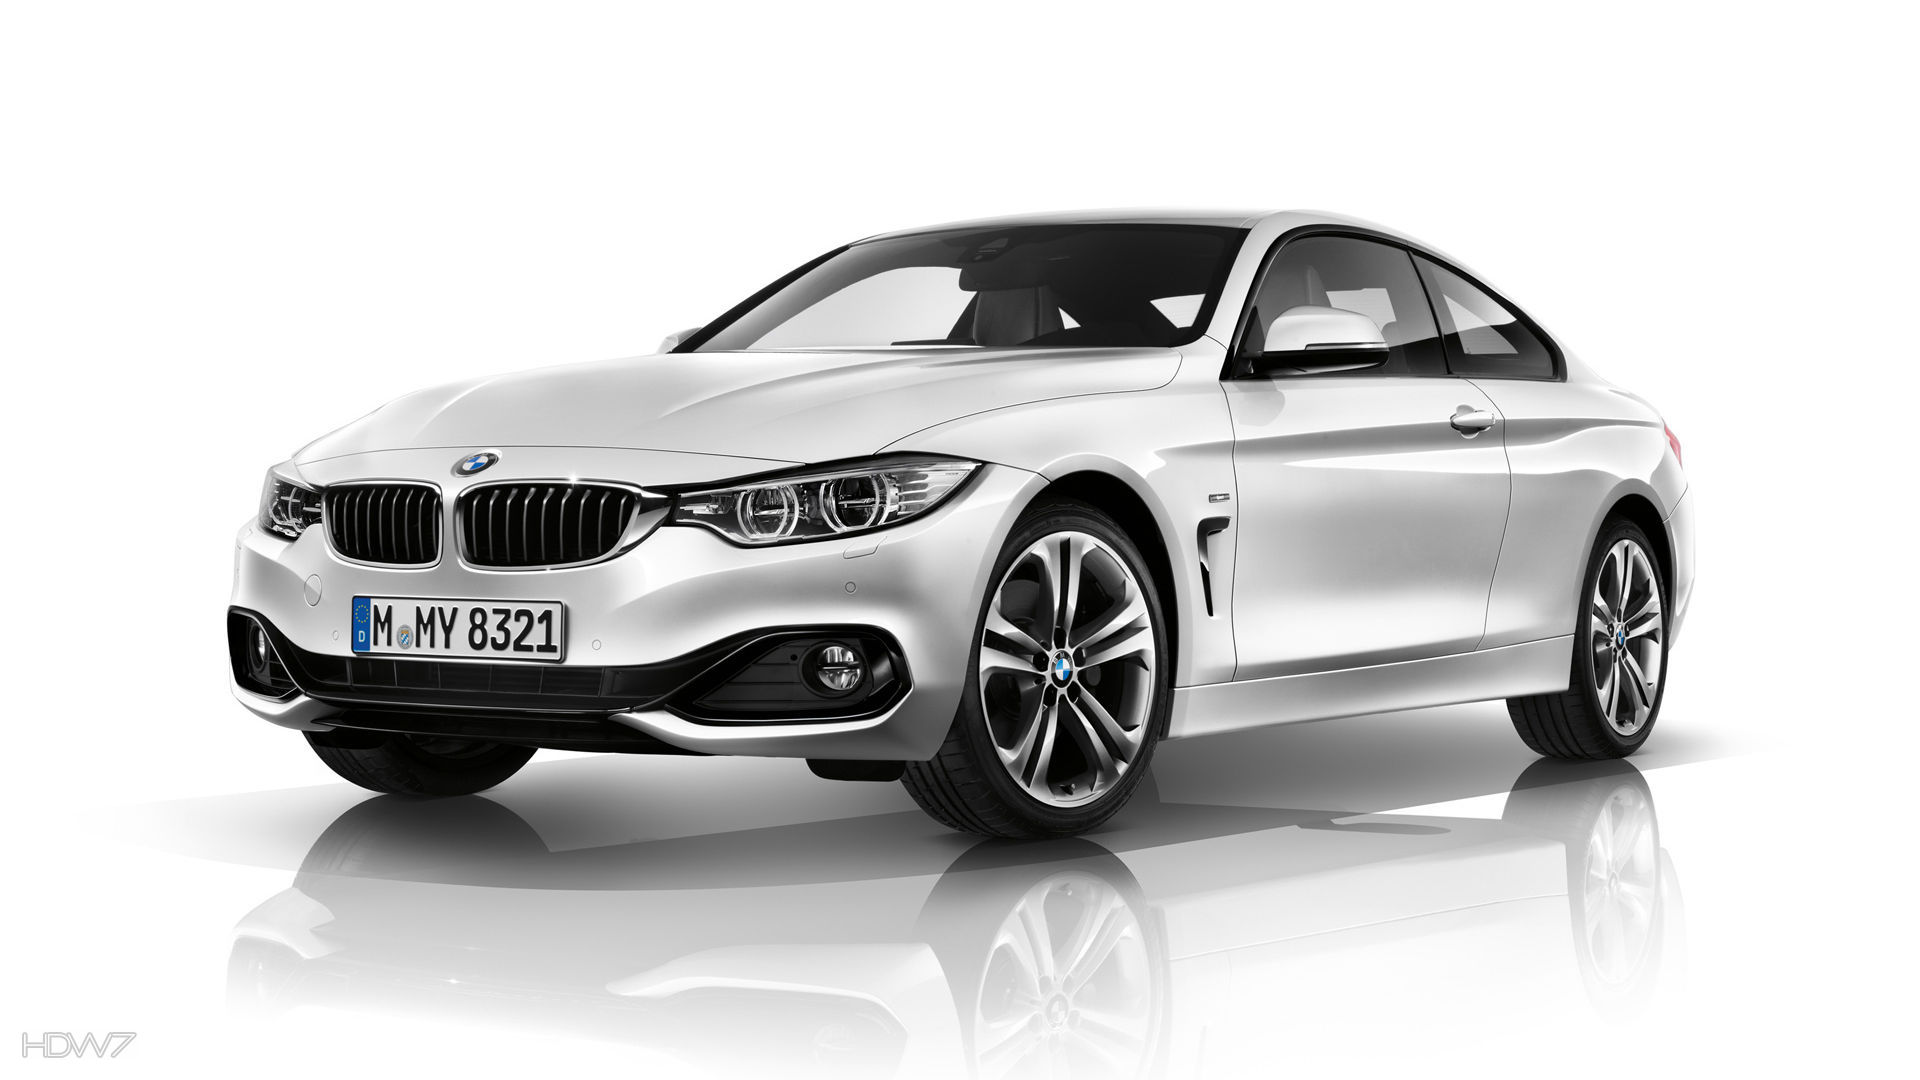 Bmw 435i Xdrive Coupe Sport Line 2013 Car Hd Wallpaper